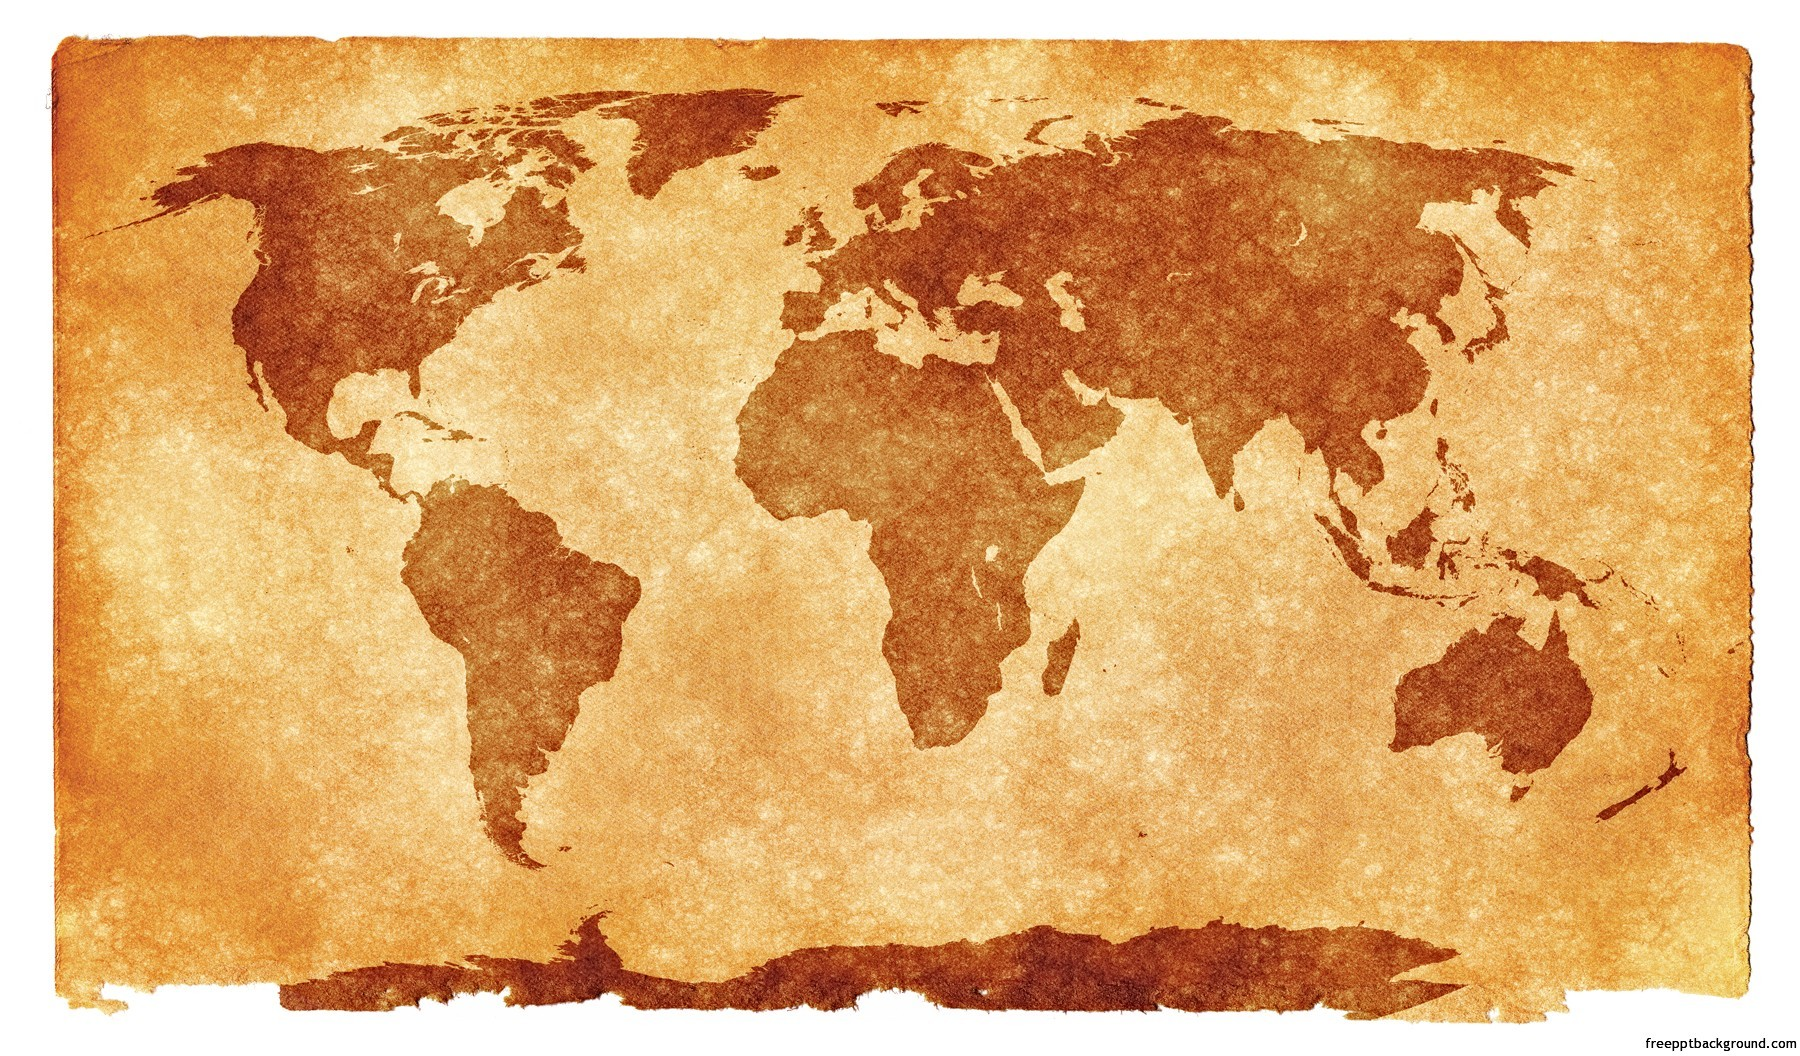 Free map background roho4senses grunge textured world map for ppt presentations free ppt backgrounds gumiabroncs